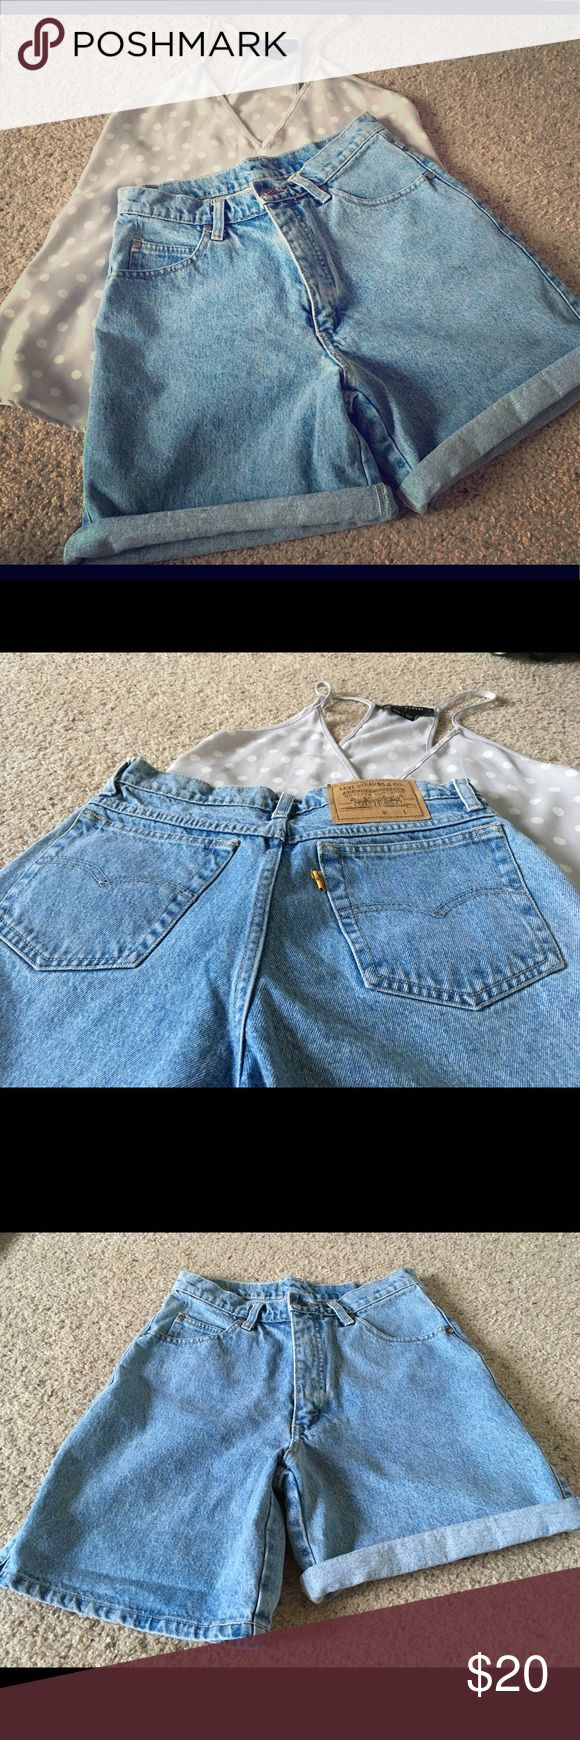 Rolled Levi's shorts high-waist light wash size 7 Original Levi's shorts with original hem. High-waist with a light wash, these look great with light colored tops and canvas shoes. This pair is a size 7 and, like most Levi's, fits a bit small. Levi's Shorts Jean Shorts